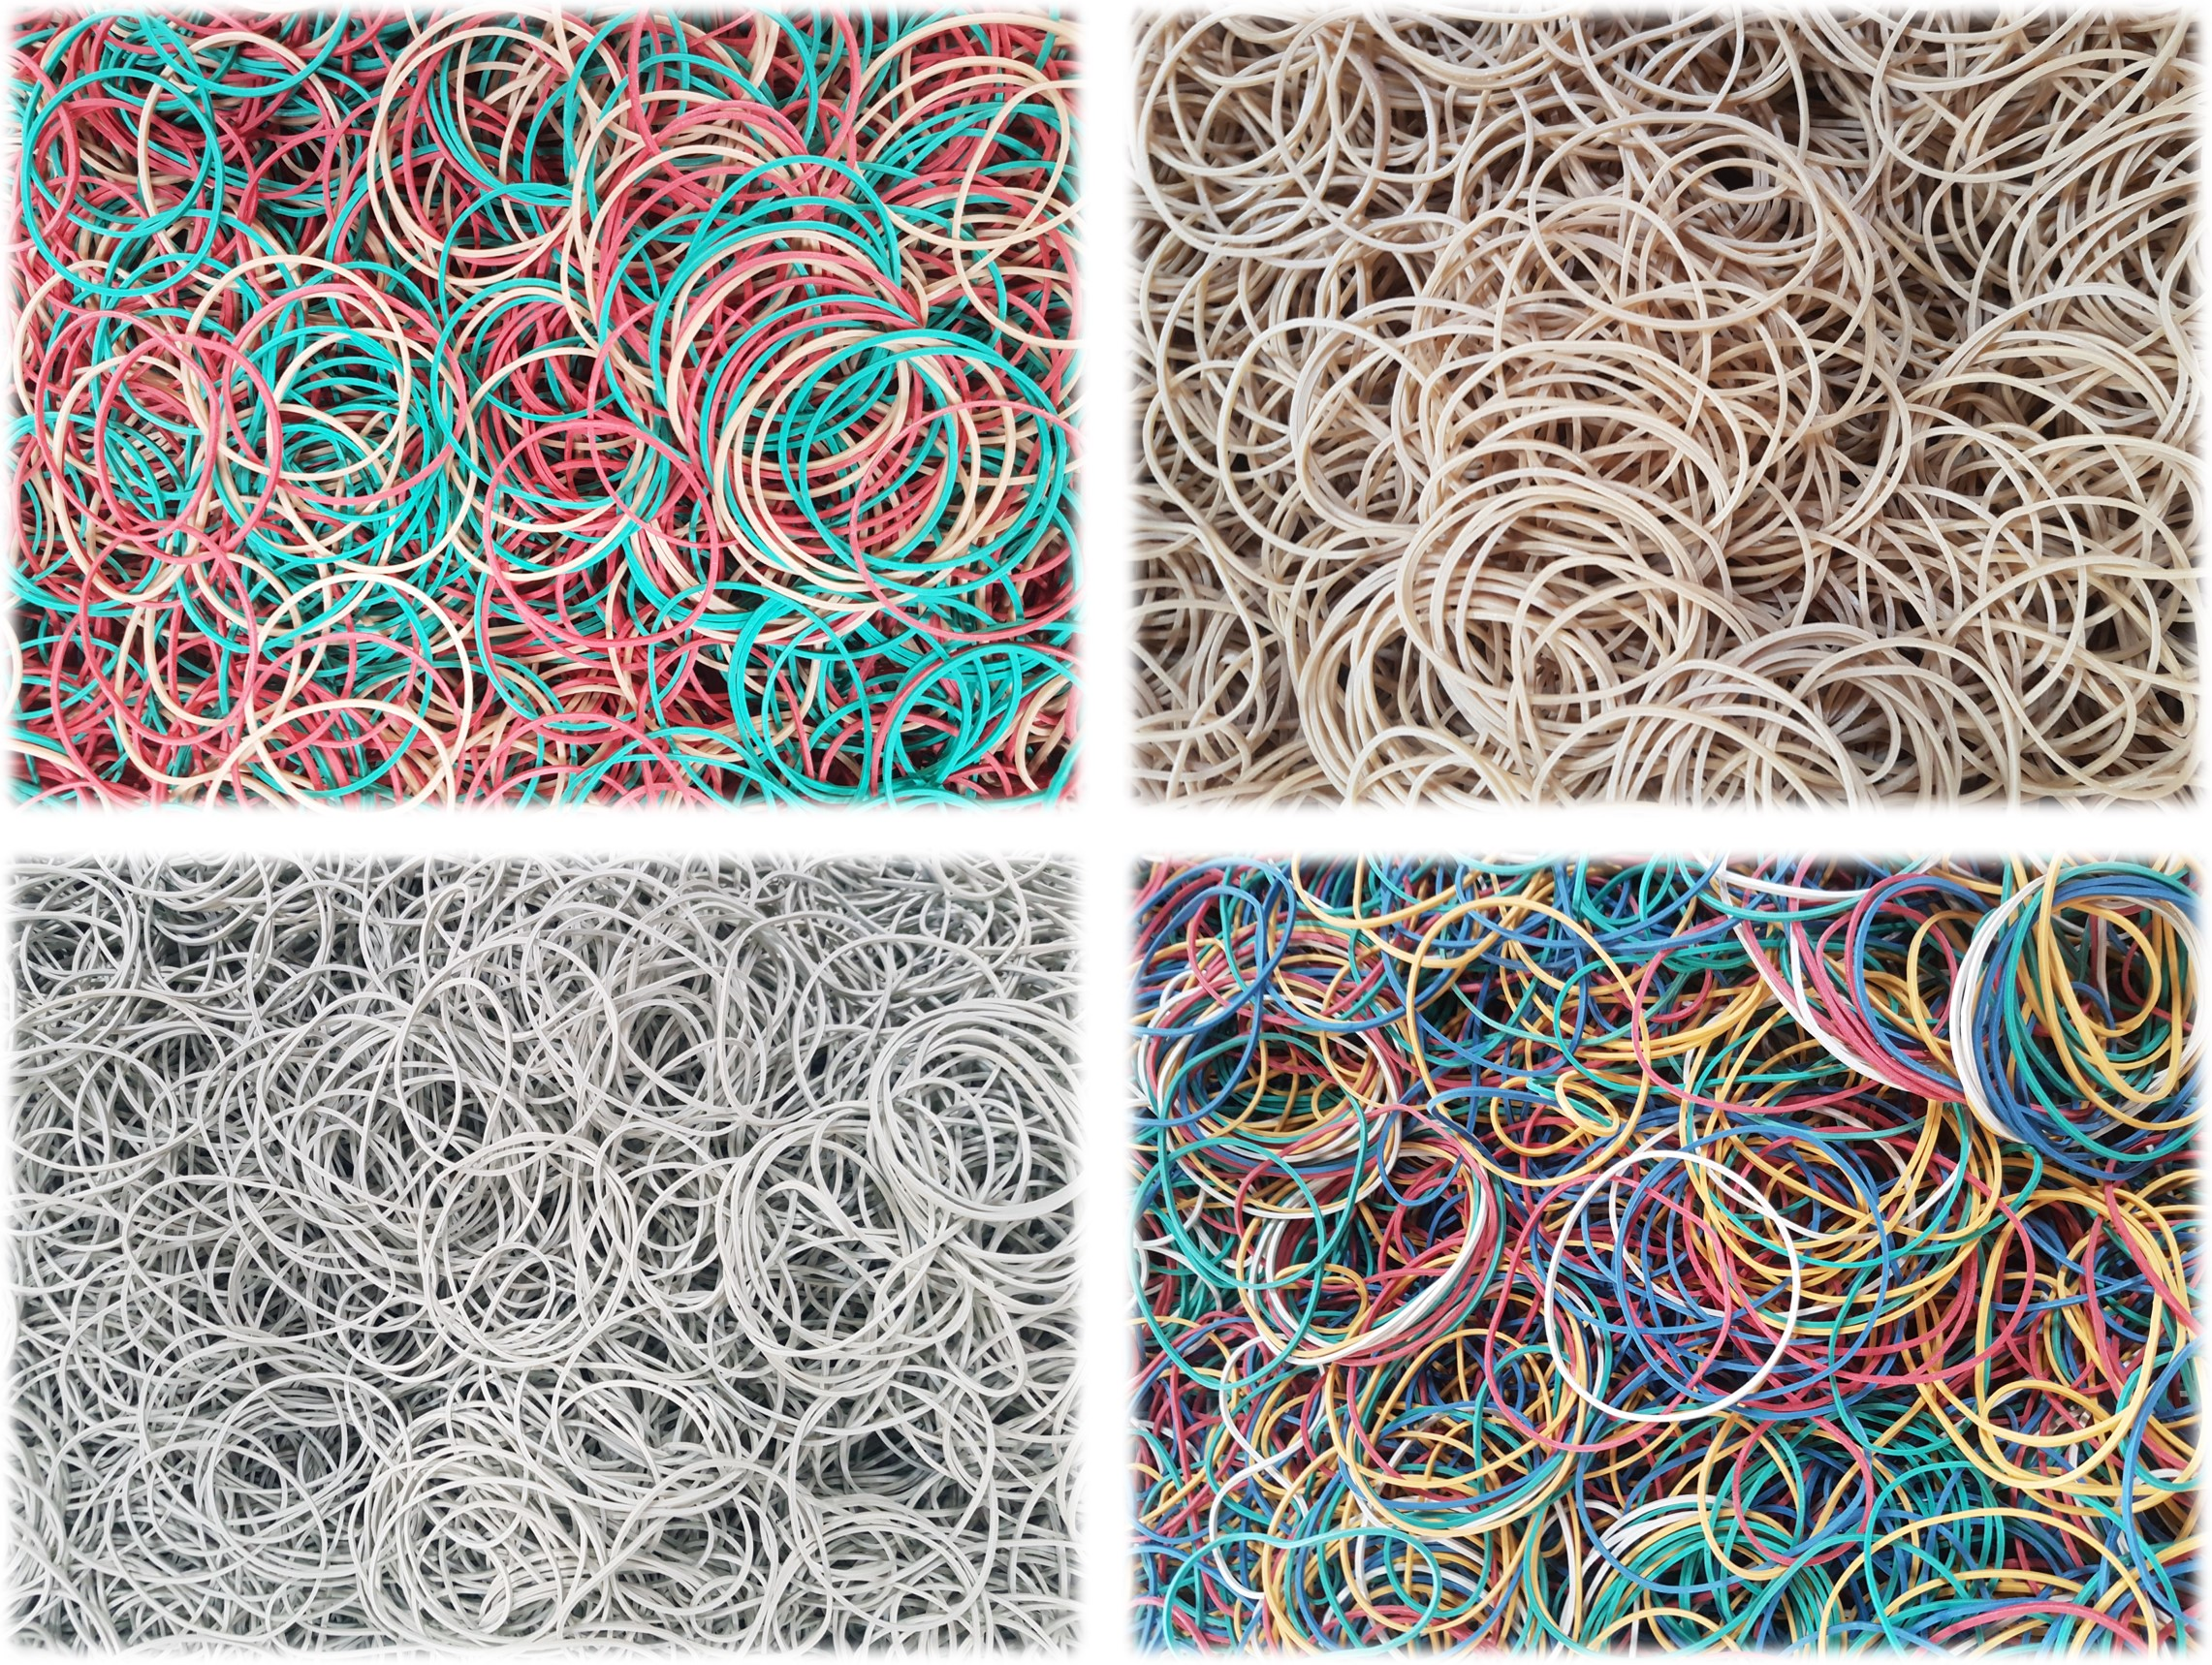 rubber bands, natural rubber bands, compound rubber bands